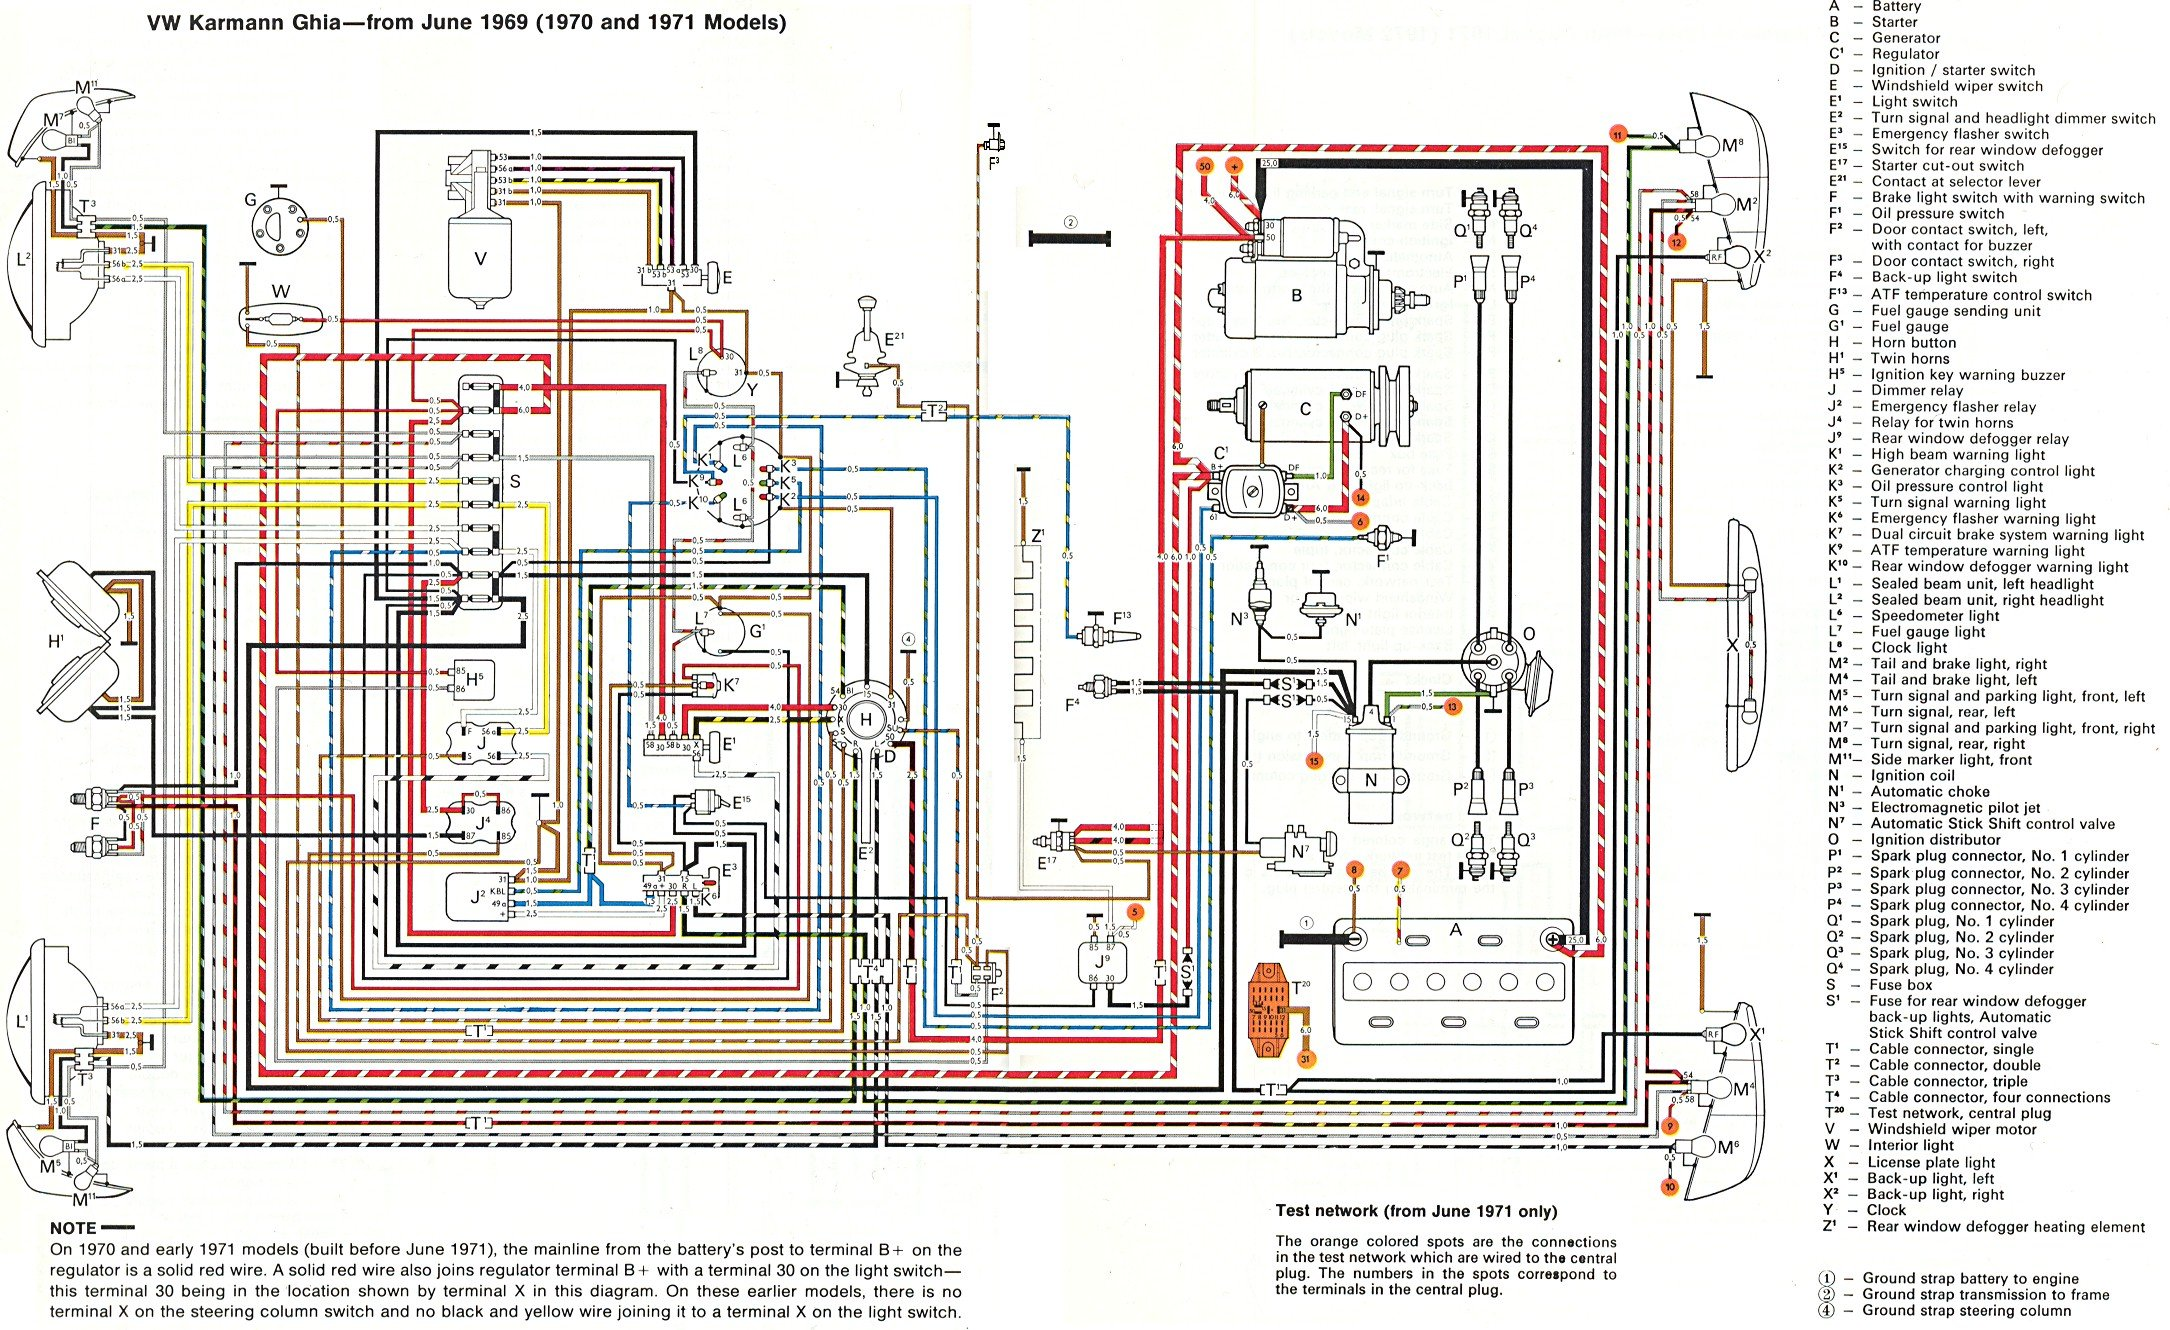 thesamba com karmann ghia wiring diagrams rh thesamba com 1970 chevelle wiring diagram 1970 chevelle dash wiring diagram